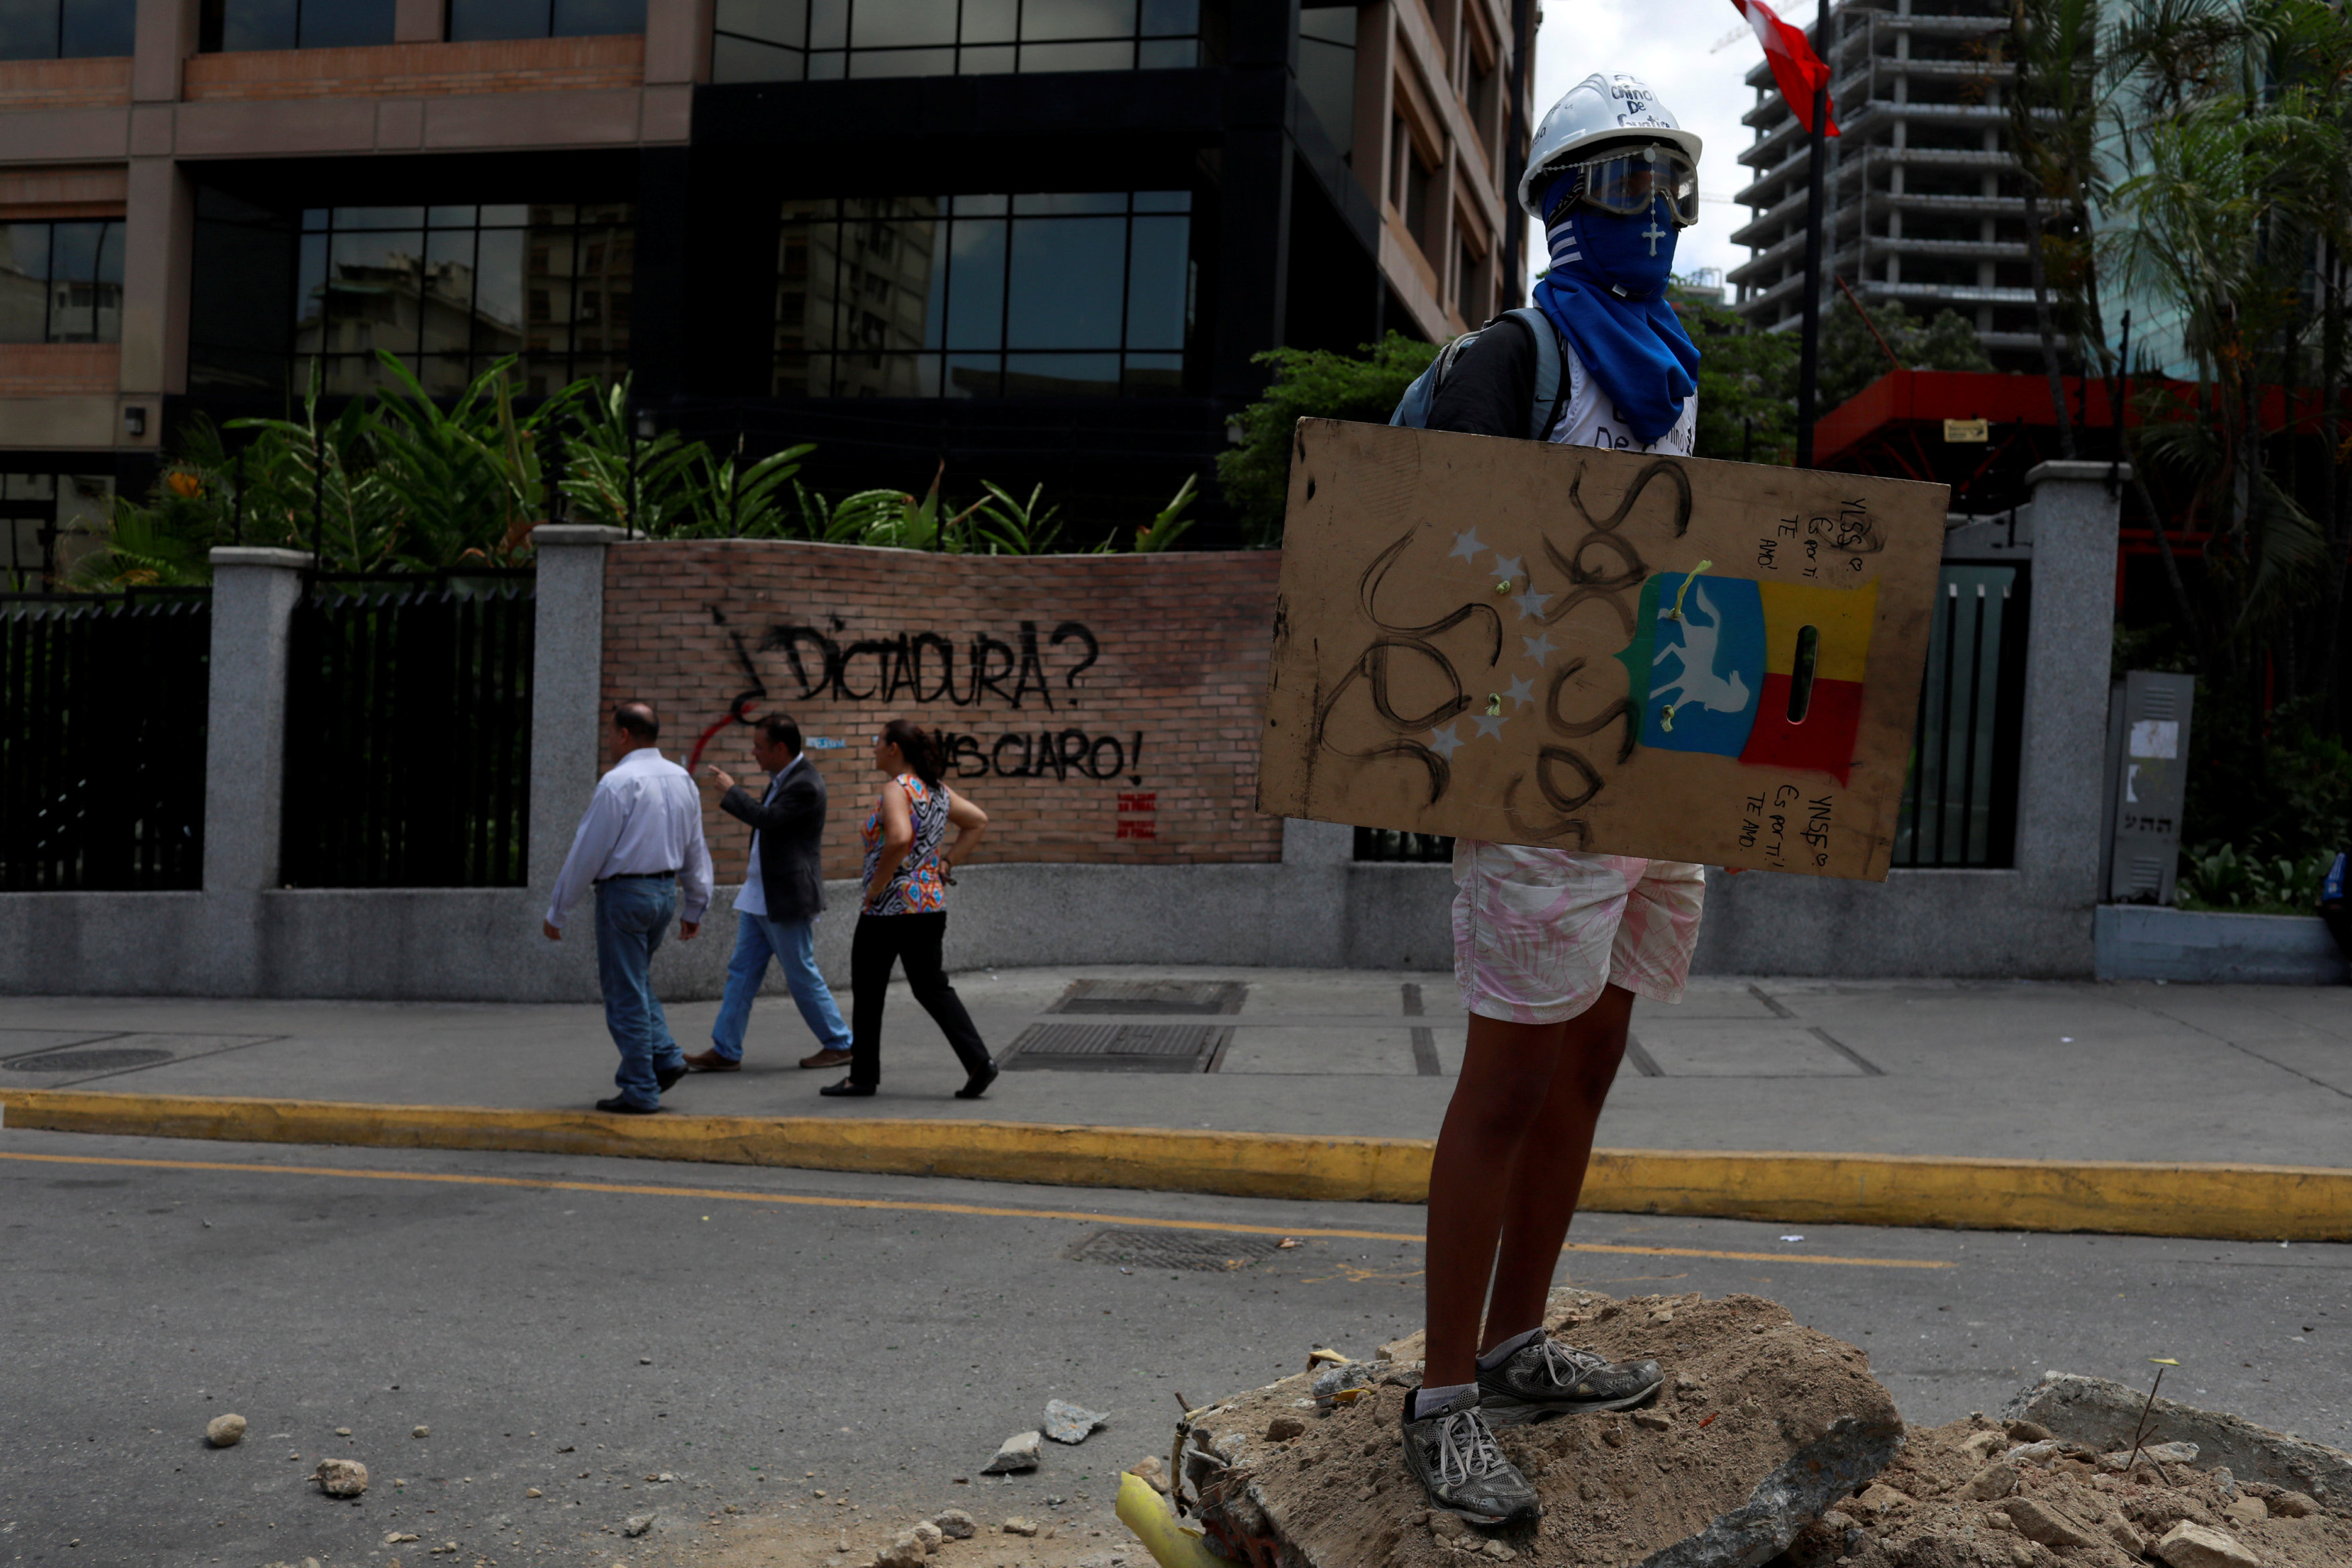 Opposition supporters rally against Venezuela's President Nicolas Maduro's government, in Caracas, Venezuela July 4, 2017. REUTERS/Marco Bello